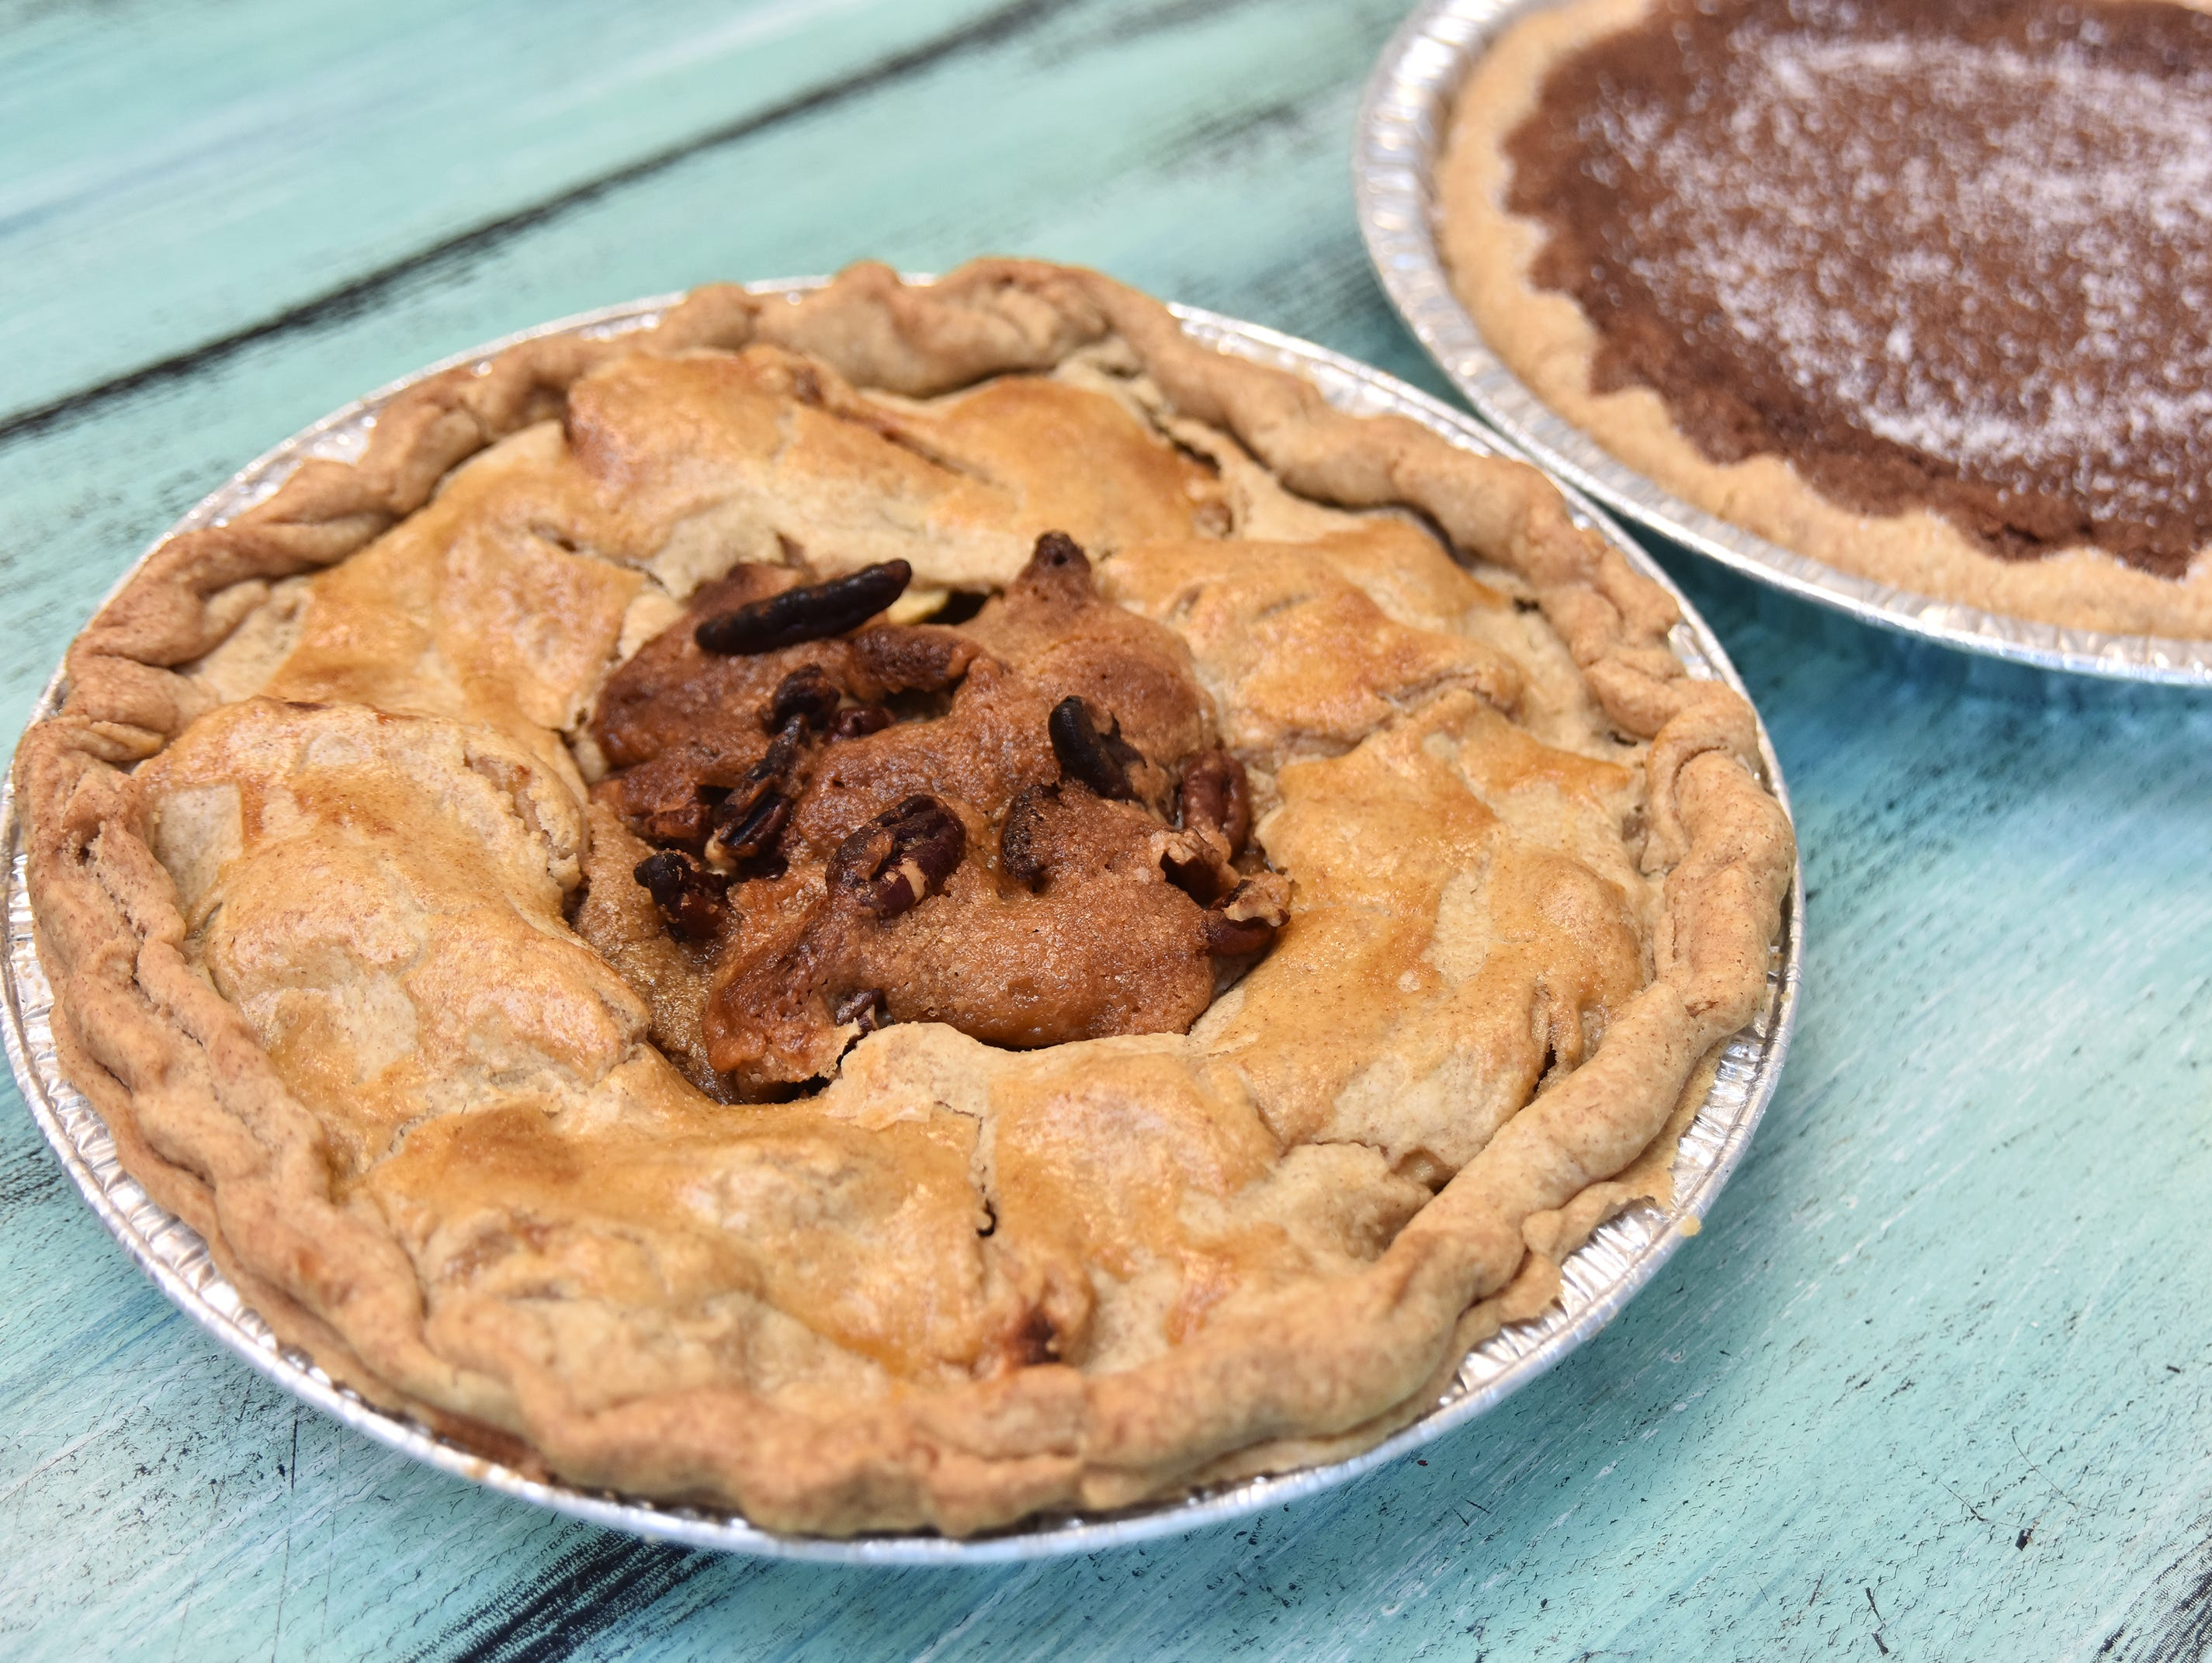 A bourbon apple pecan pie and a salted chocolate pie made by Jeannie Hall.